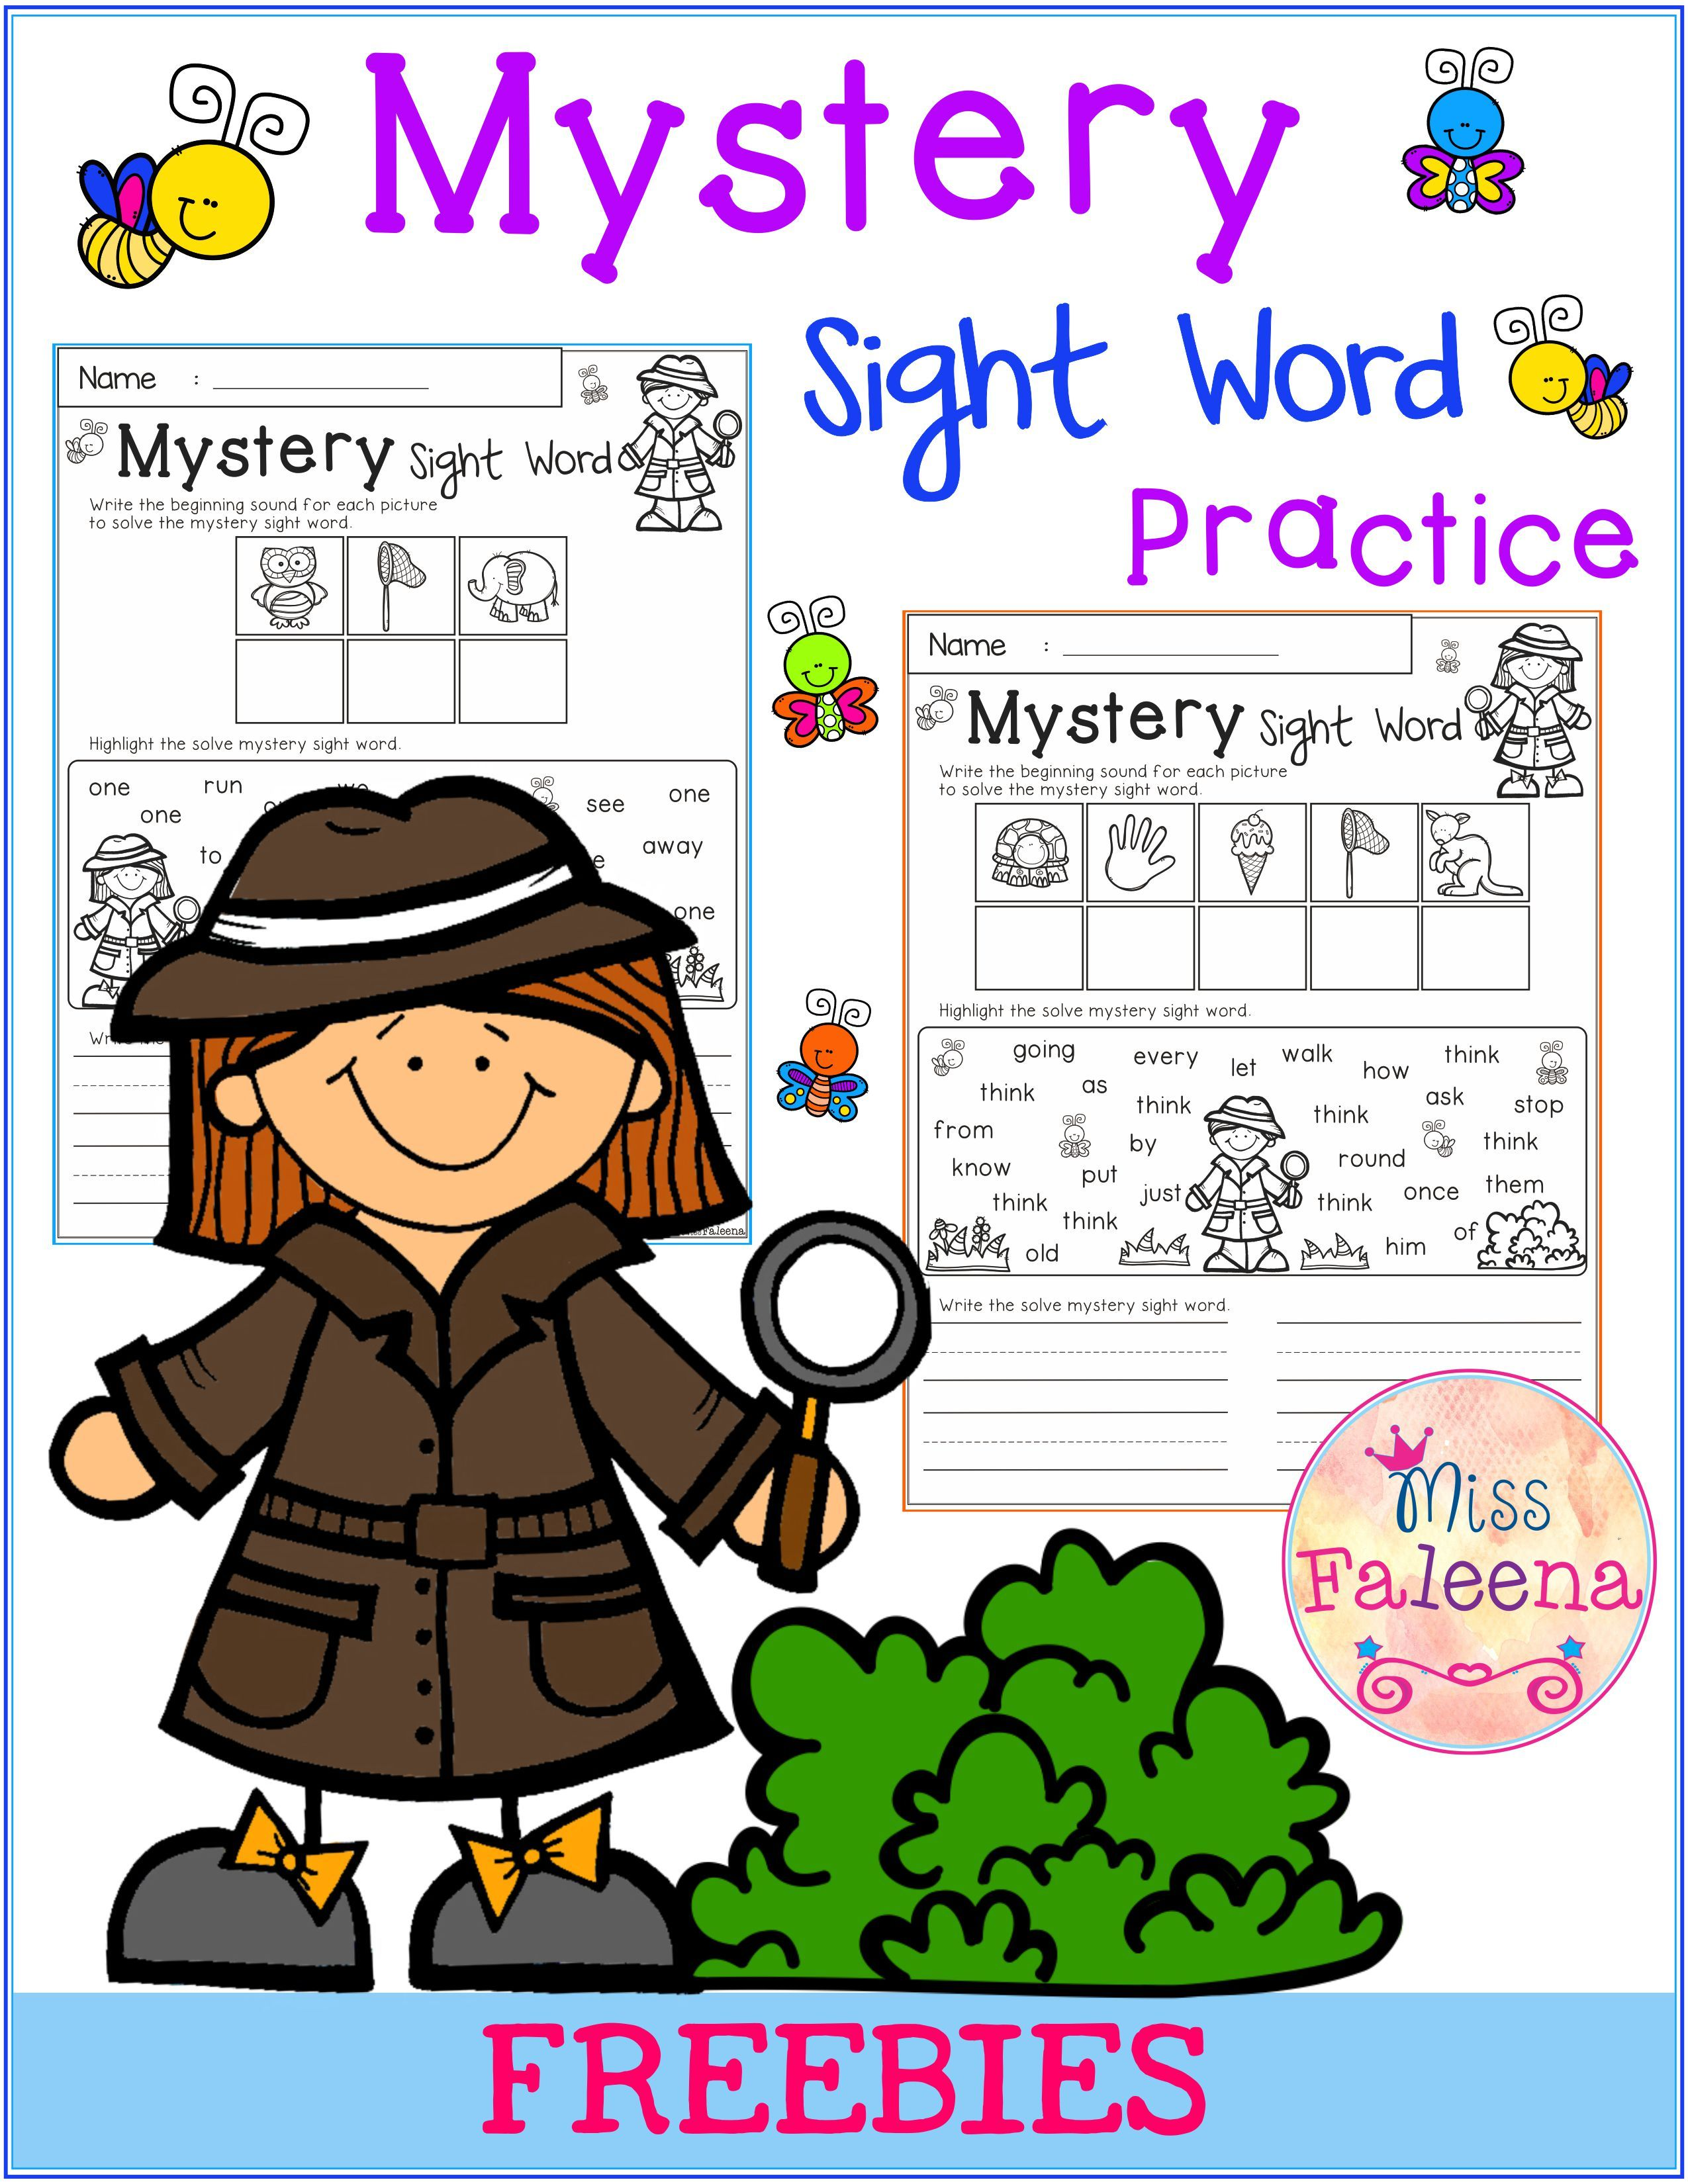 Free Mystery Sight Word Practice Sight Word Practice Word Practice Sight Word Worksheets Free [ 3300 x 2550 Pixel ]